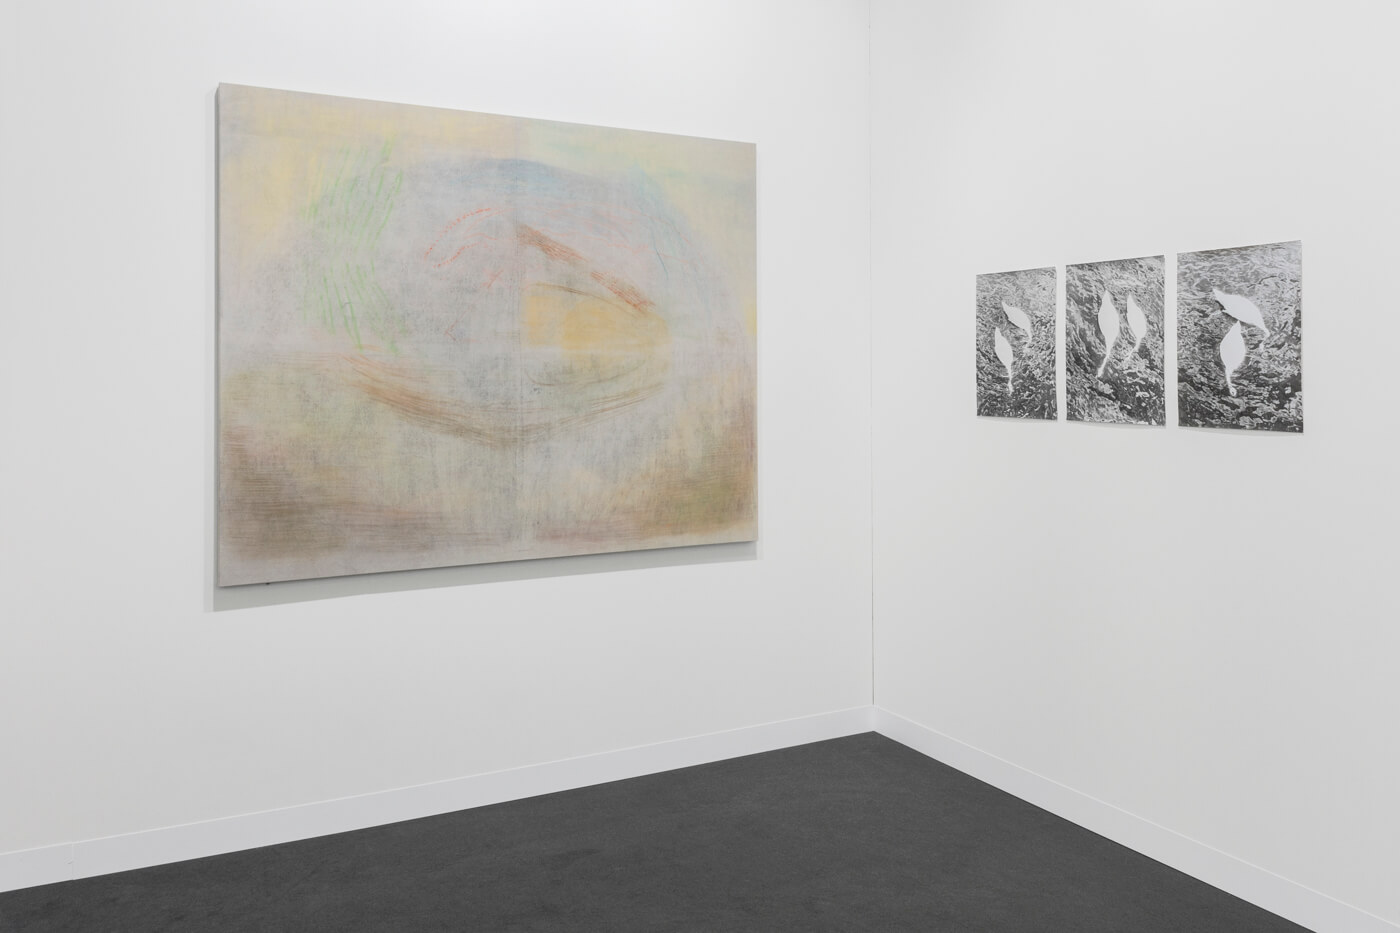 Installation view: ProjecteSD, Hall 2.1, Booth L4 | ART BASEL 2019 | ProjecteSD